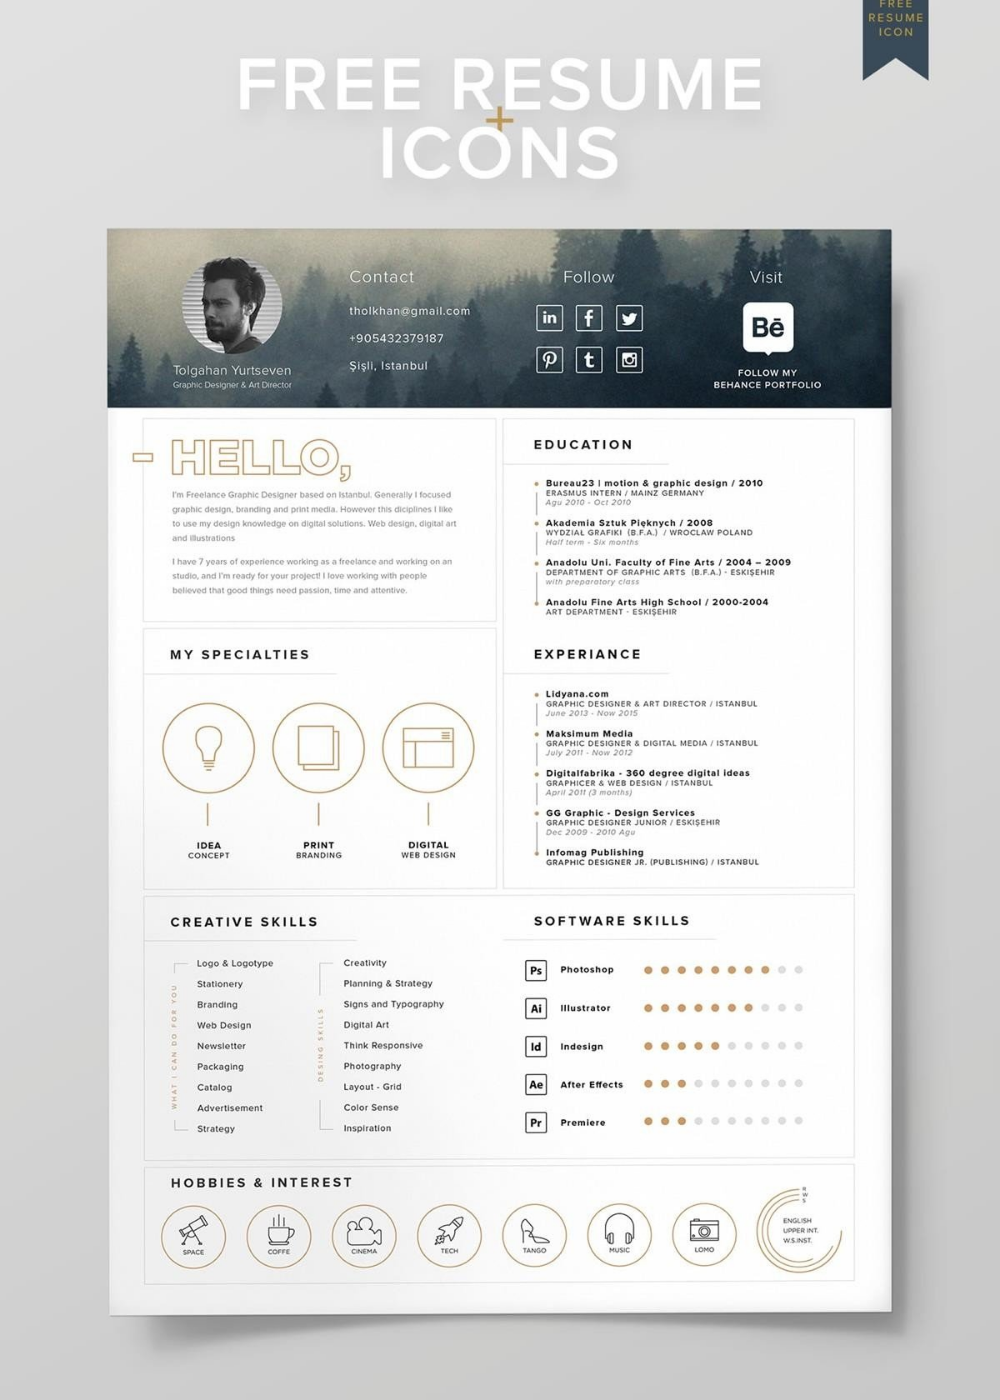 Visual Resume Cv Templates 15 Layouts To Download Free Included Resume Design Free Resume Design Template Graphic Design Resume